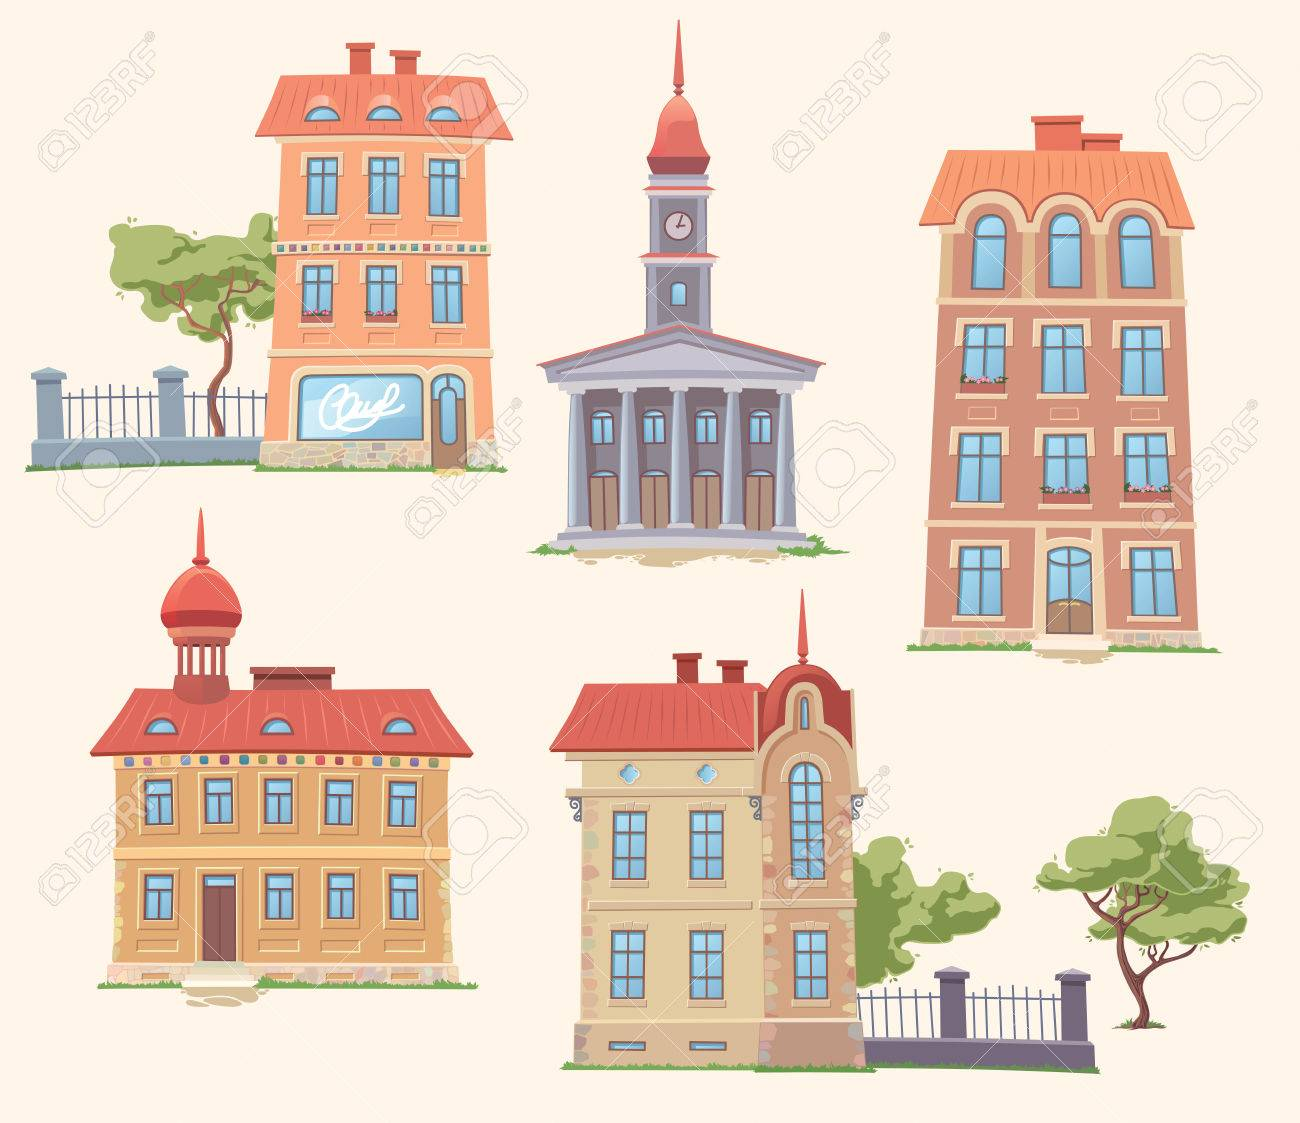 Small Apartment Building Stock Photos  Pictures Royalty Free - Small apartment buildings